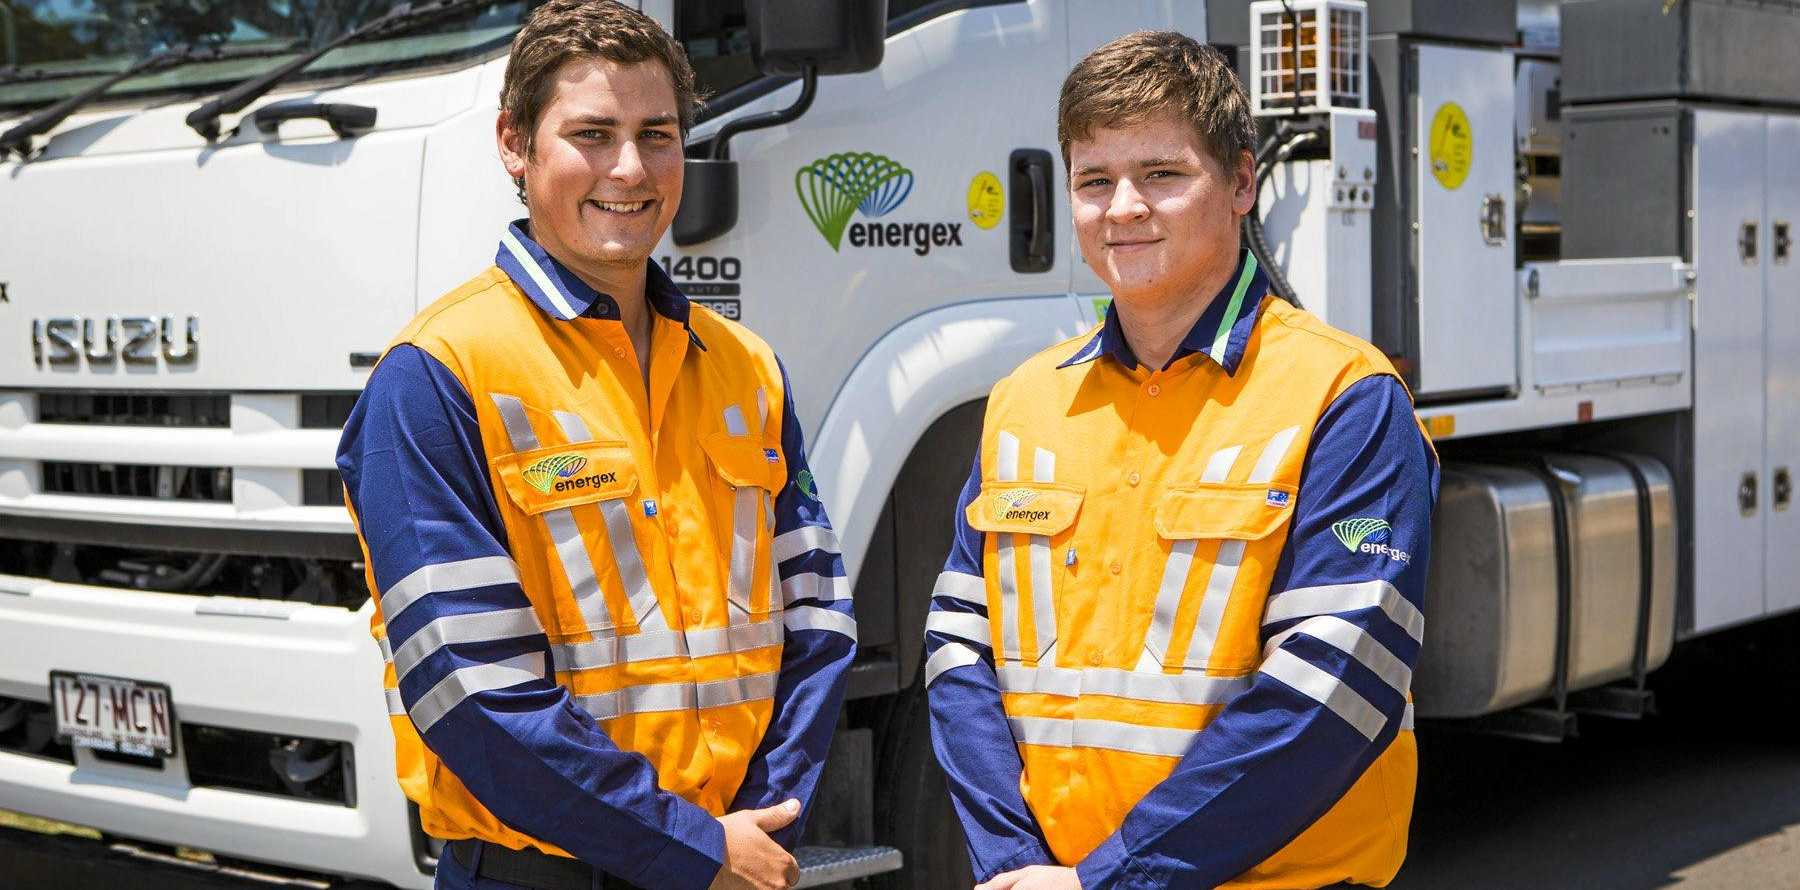 Energex is looking for 23 apprentices for 2020 across southeast Queensland